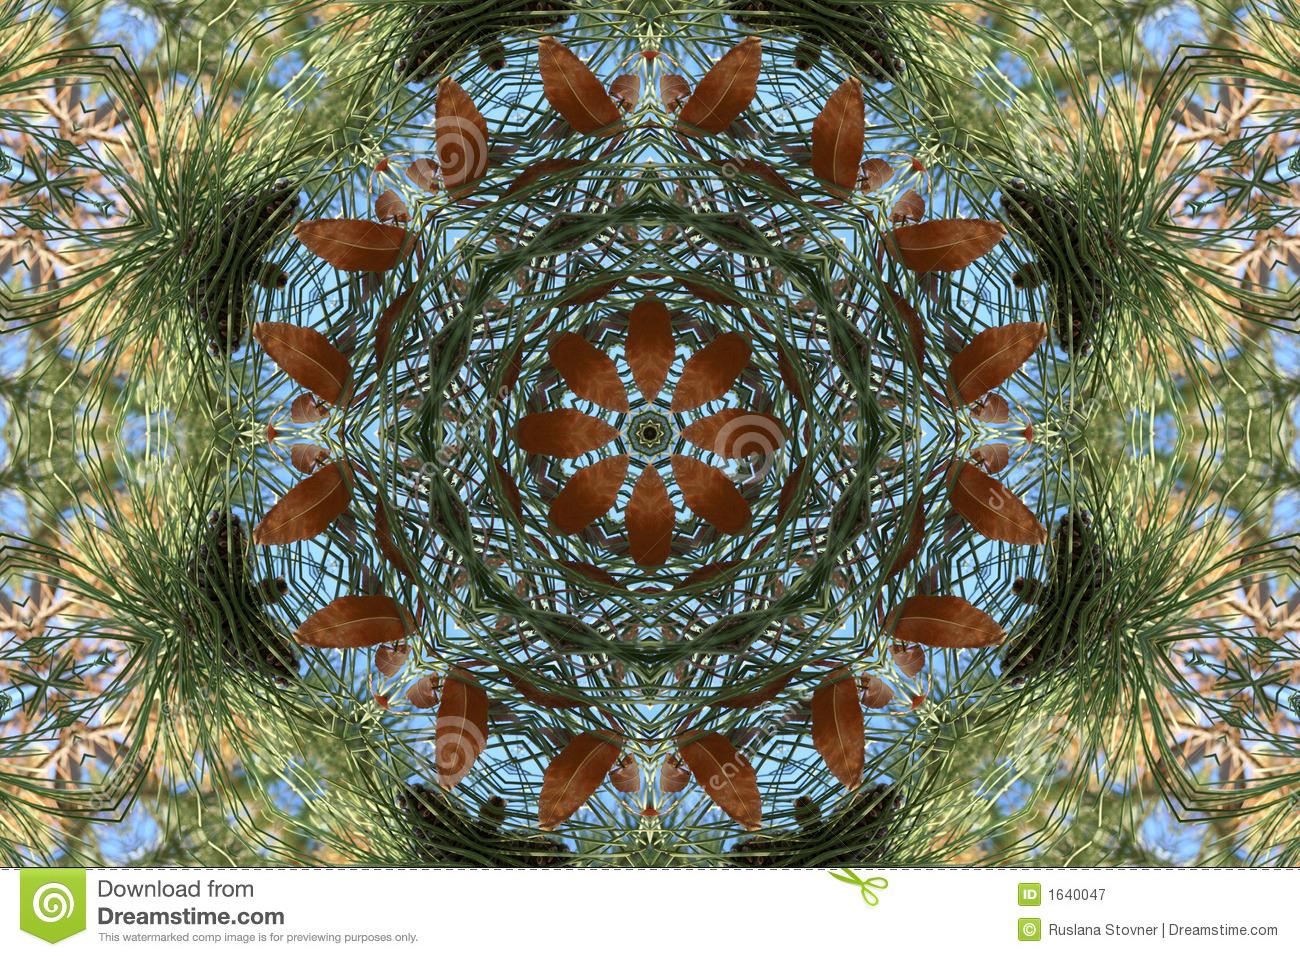 Fall Winter Wallpaper Free Stock Image Of Autumn Kaleidoscope Royalty Free Stock